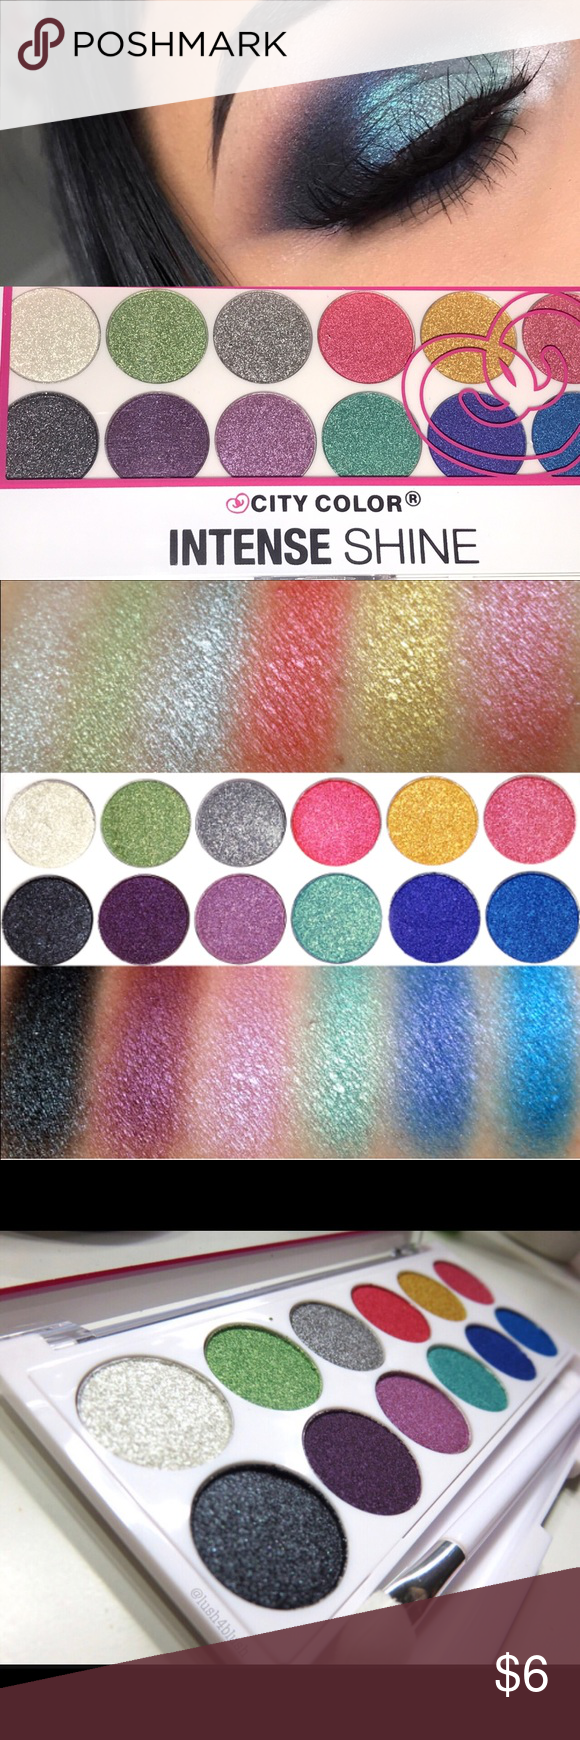 Intense Shine Eye Shadow Palette by City Color Boutique